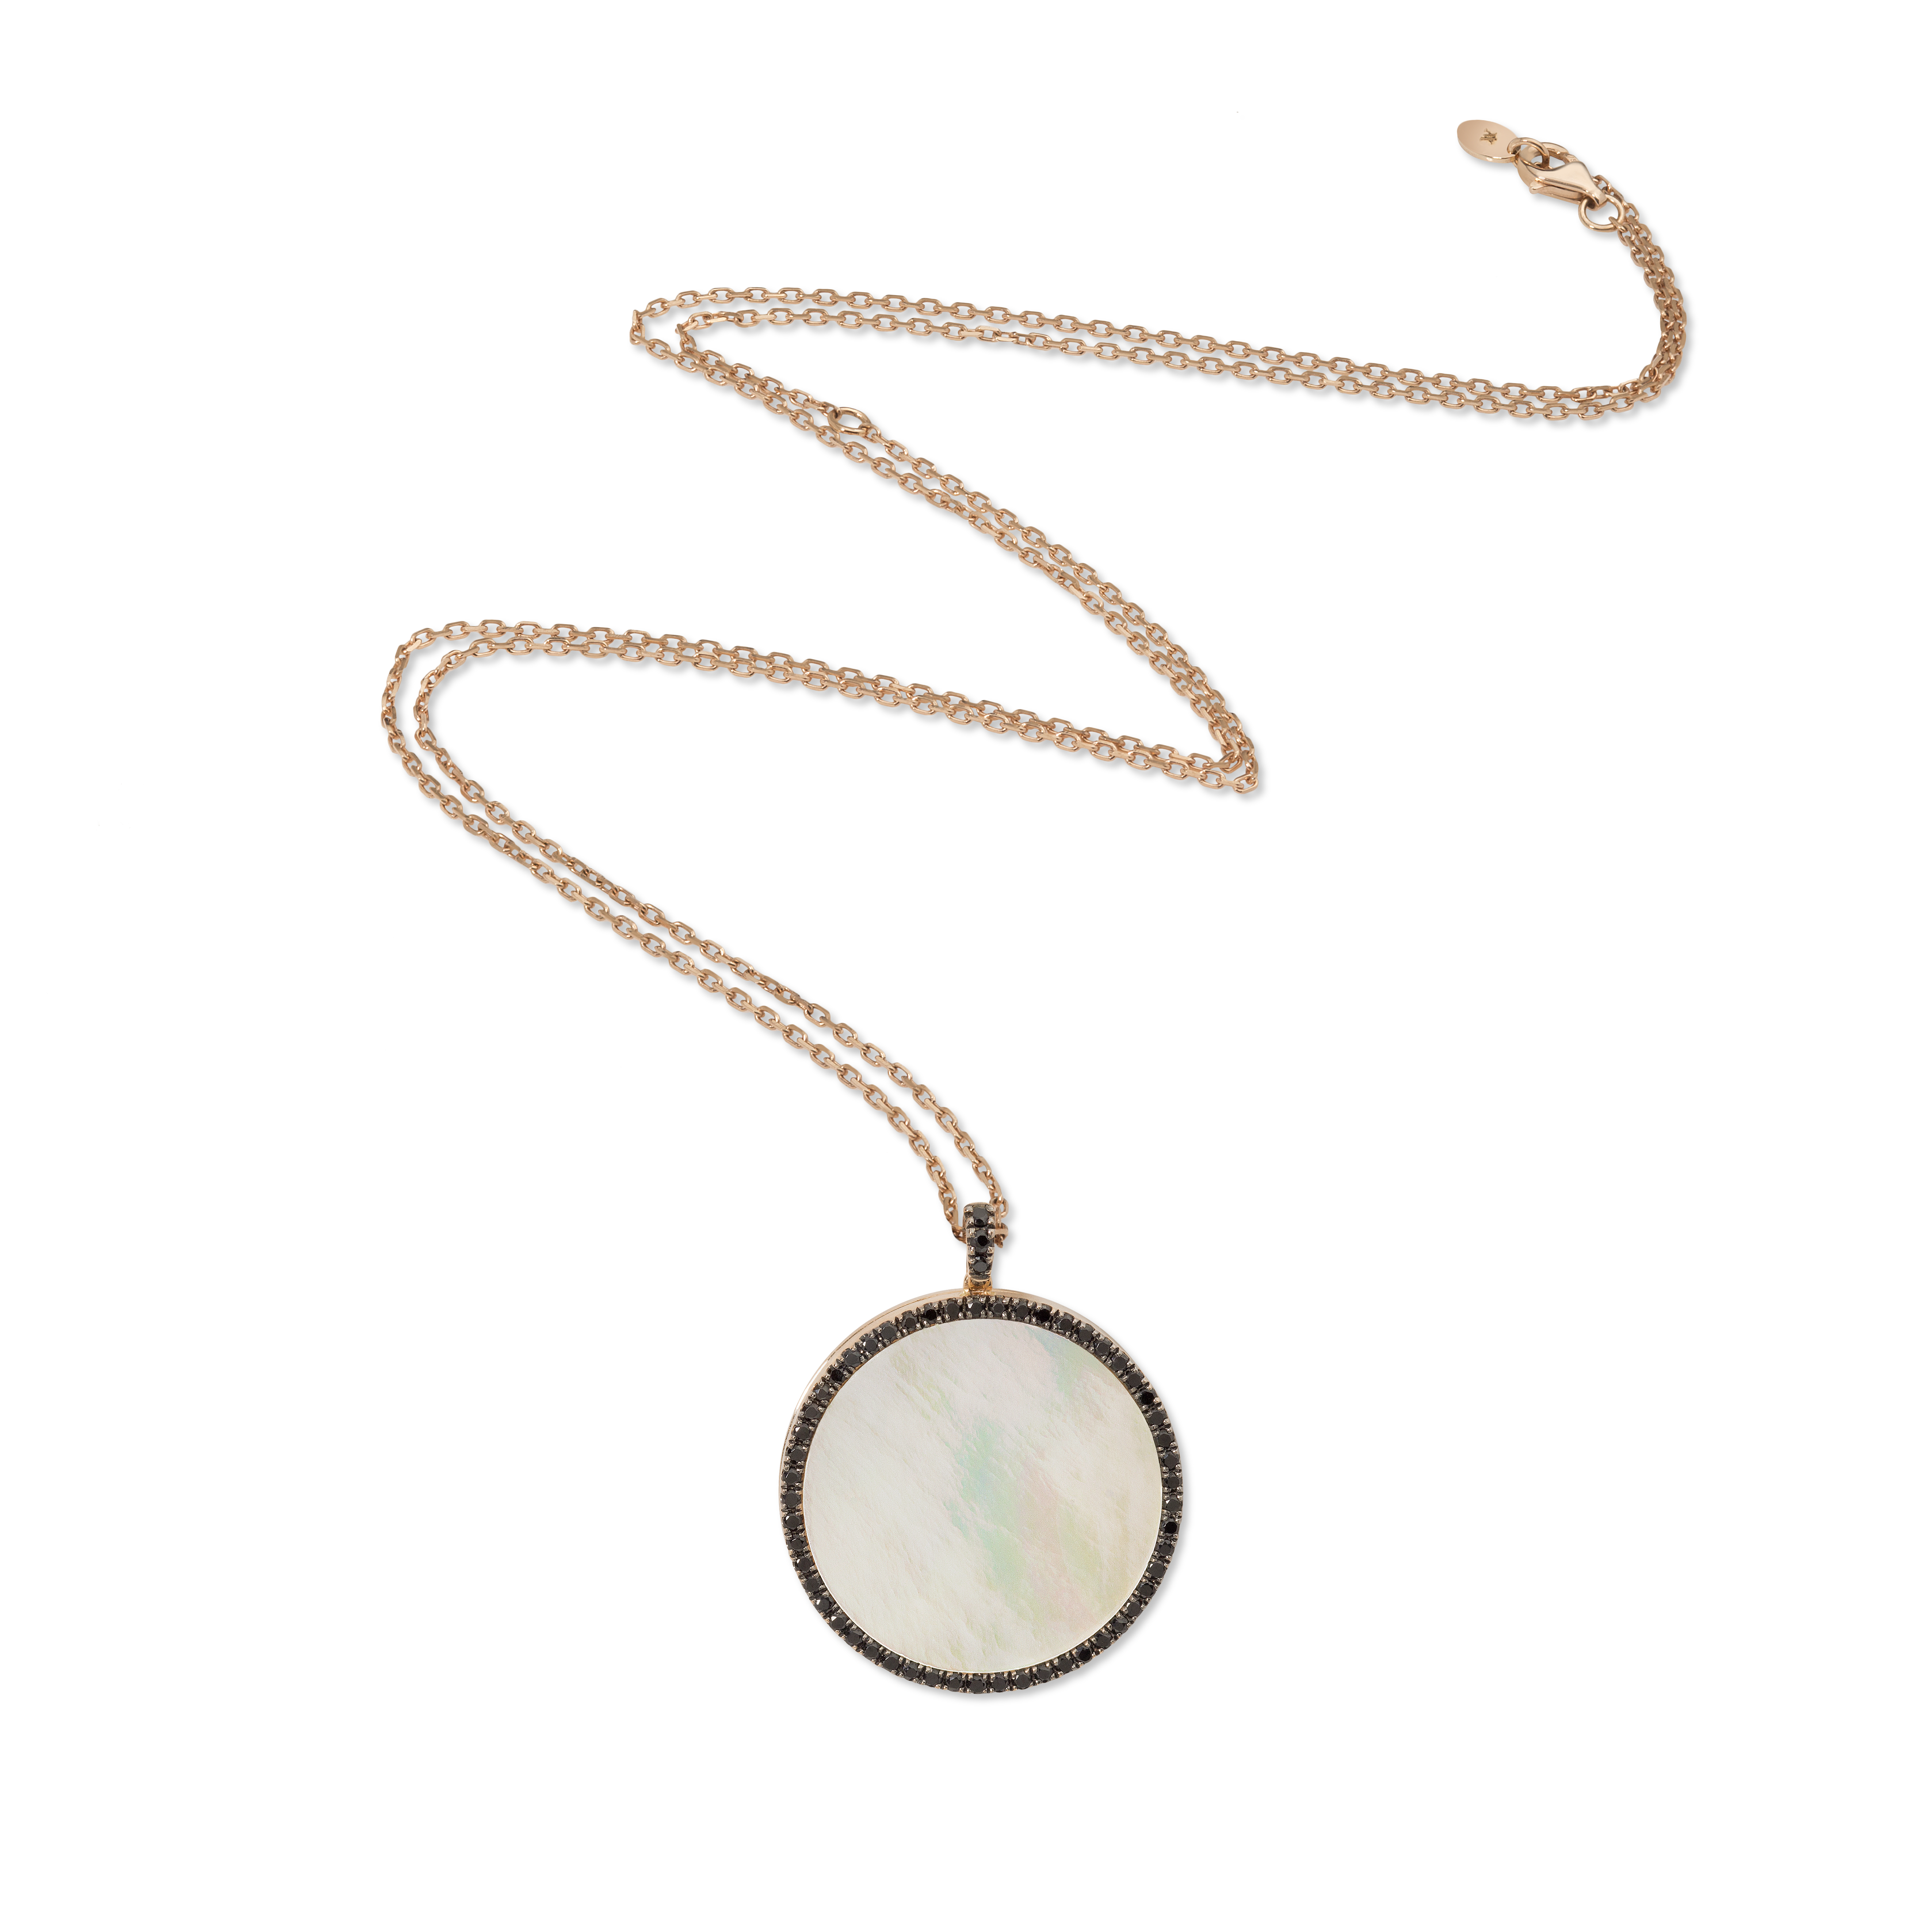 Wanderlust Locket Necklace - 18K Gold by Aveen on curated-crowd.com